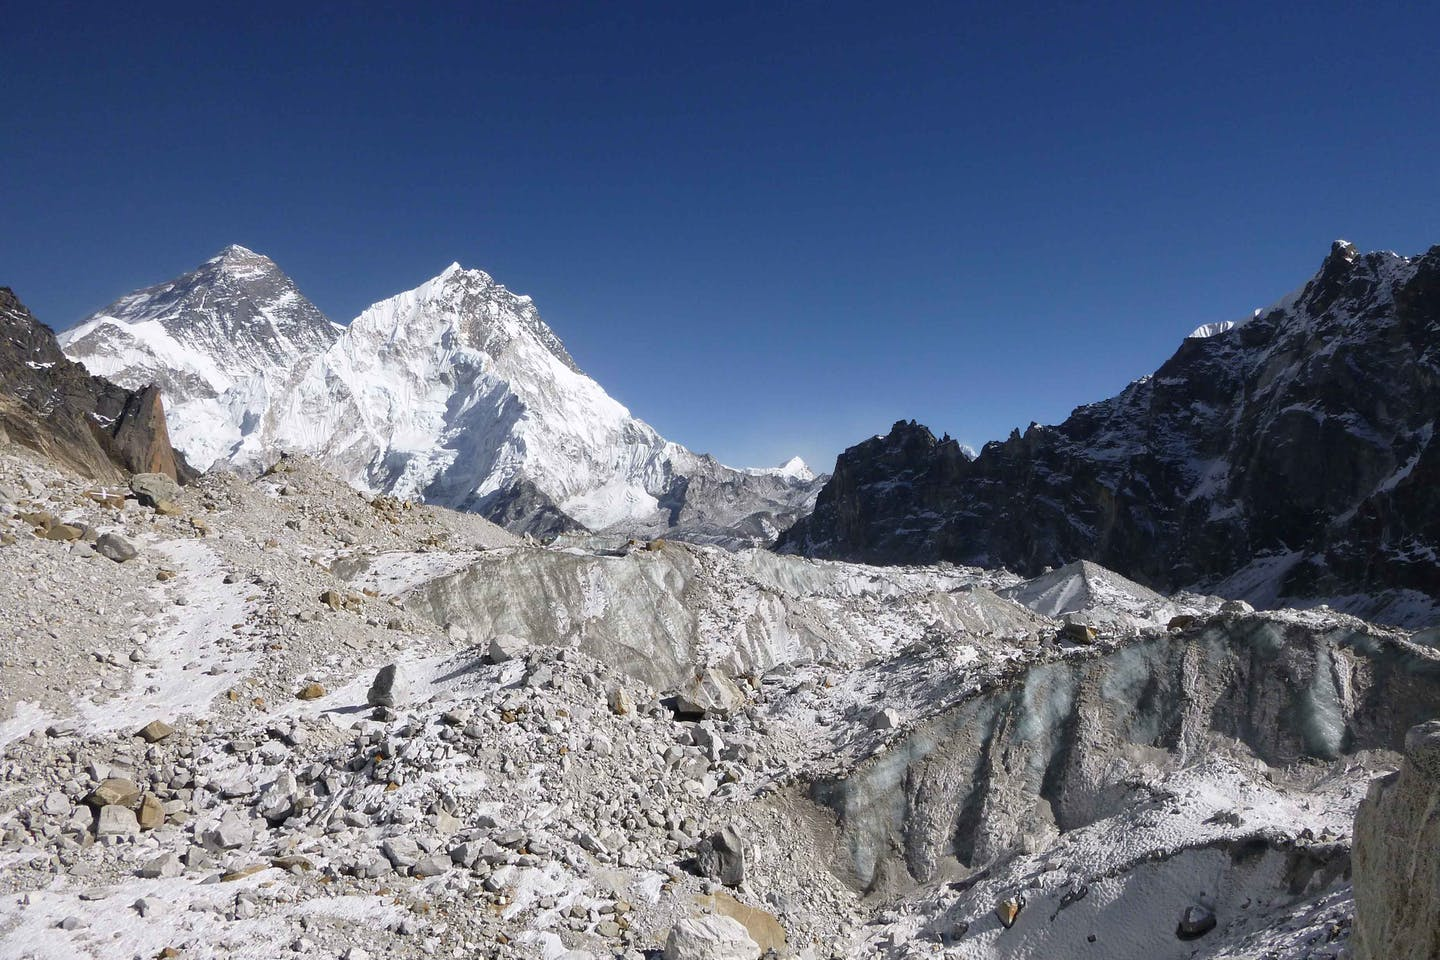 Changri Nup glacier (Everest region)